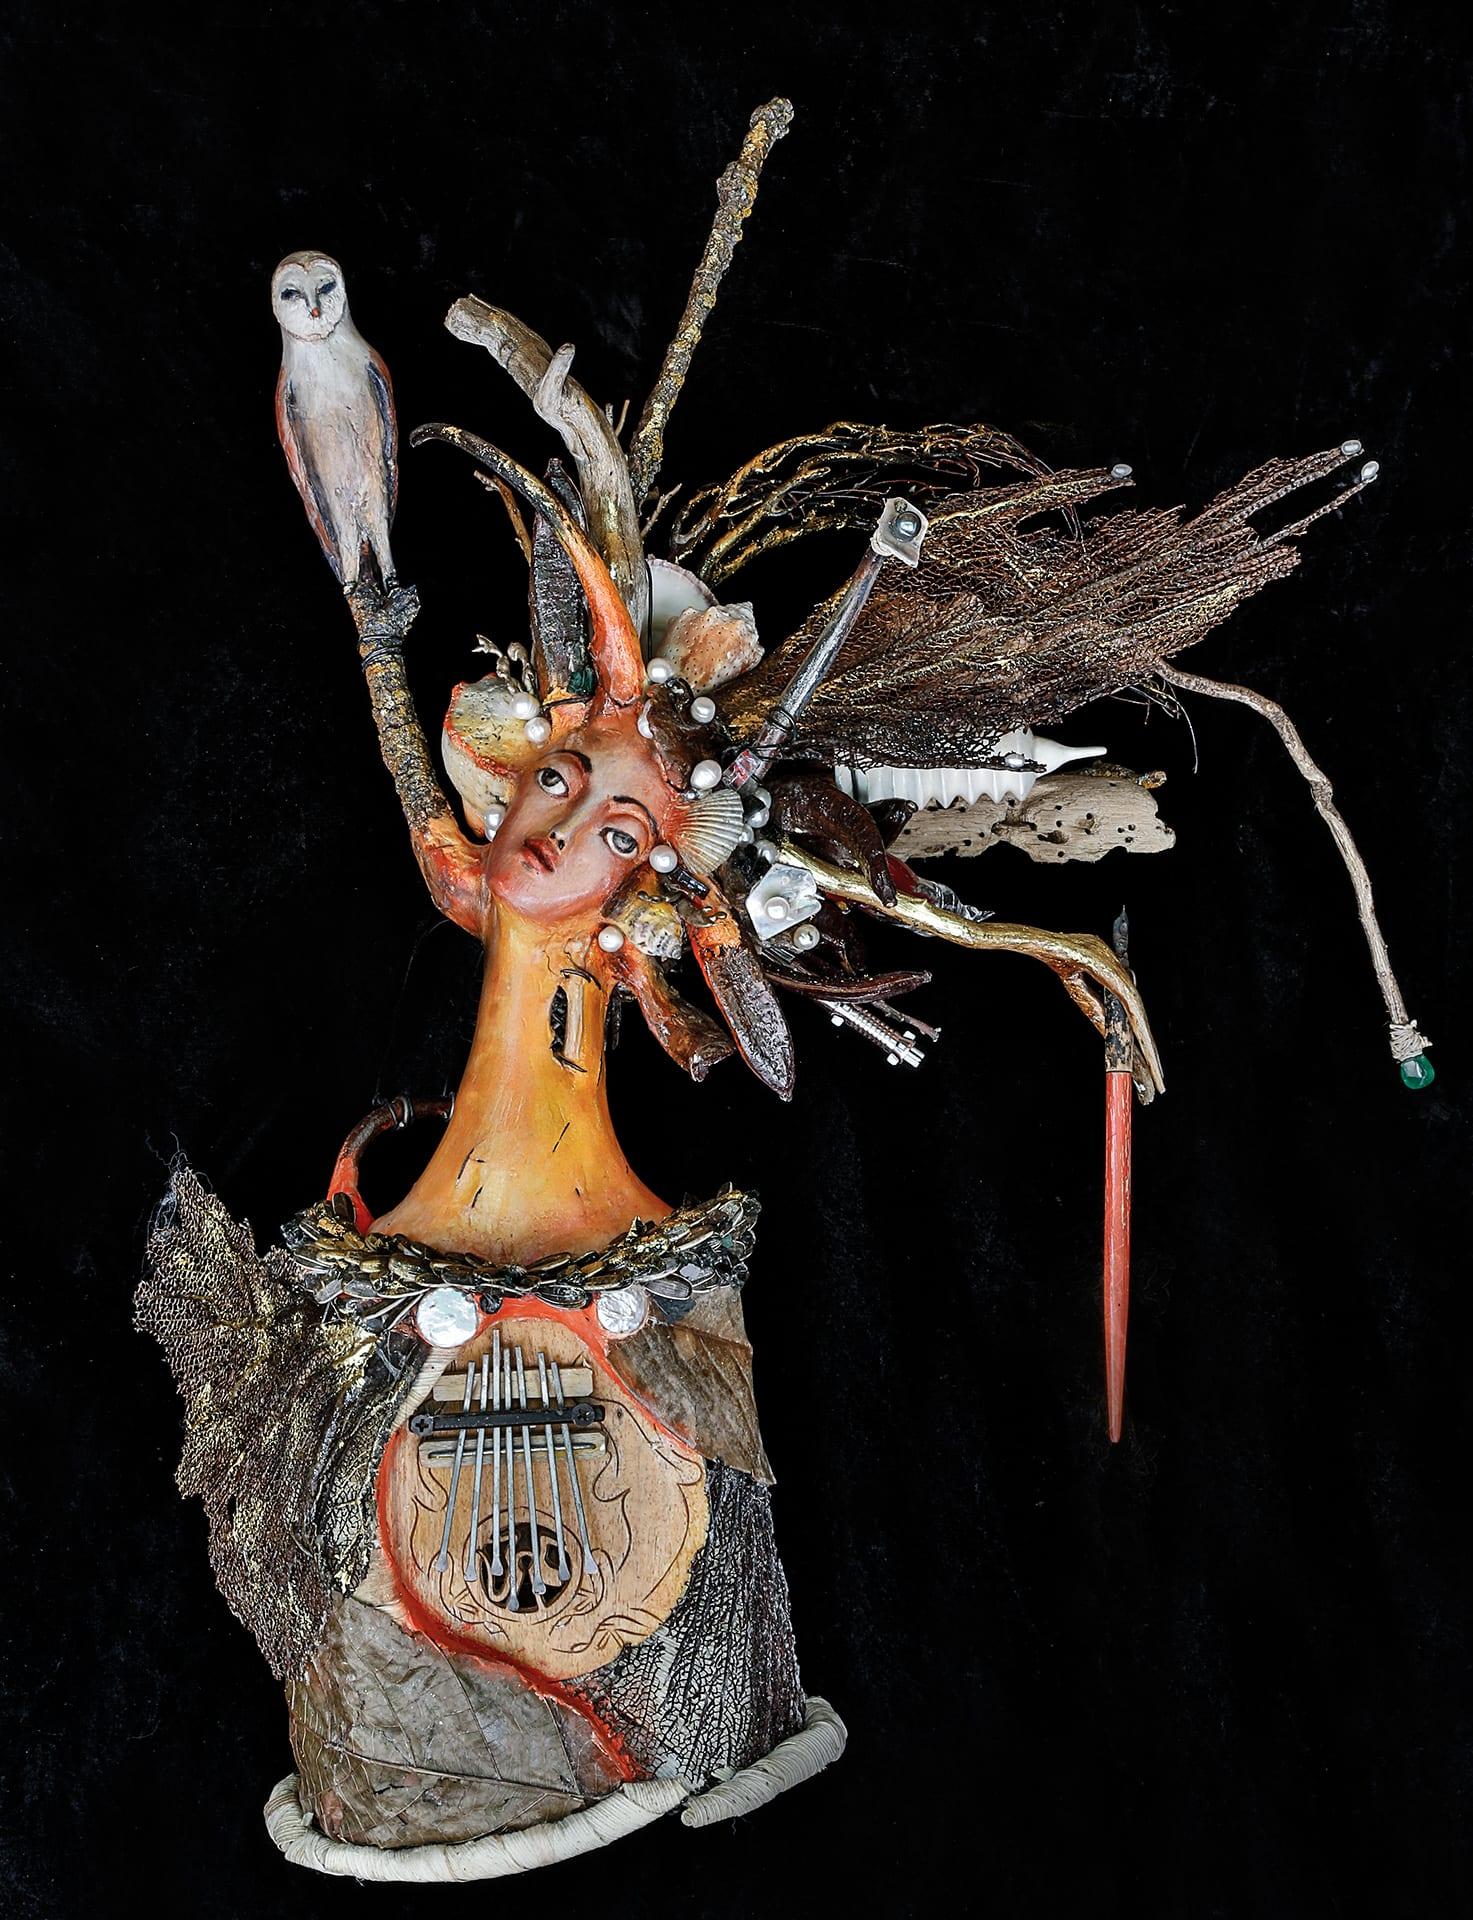 El Poeta - The Poet - 3D mixed media- 24